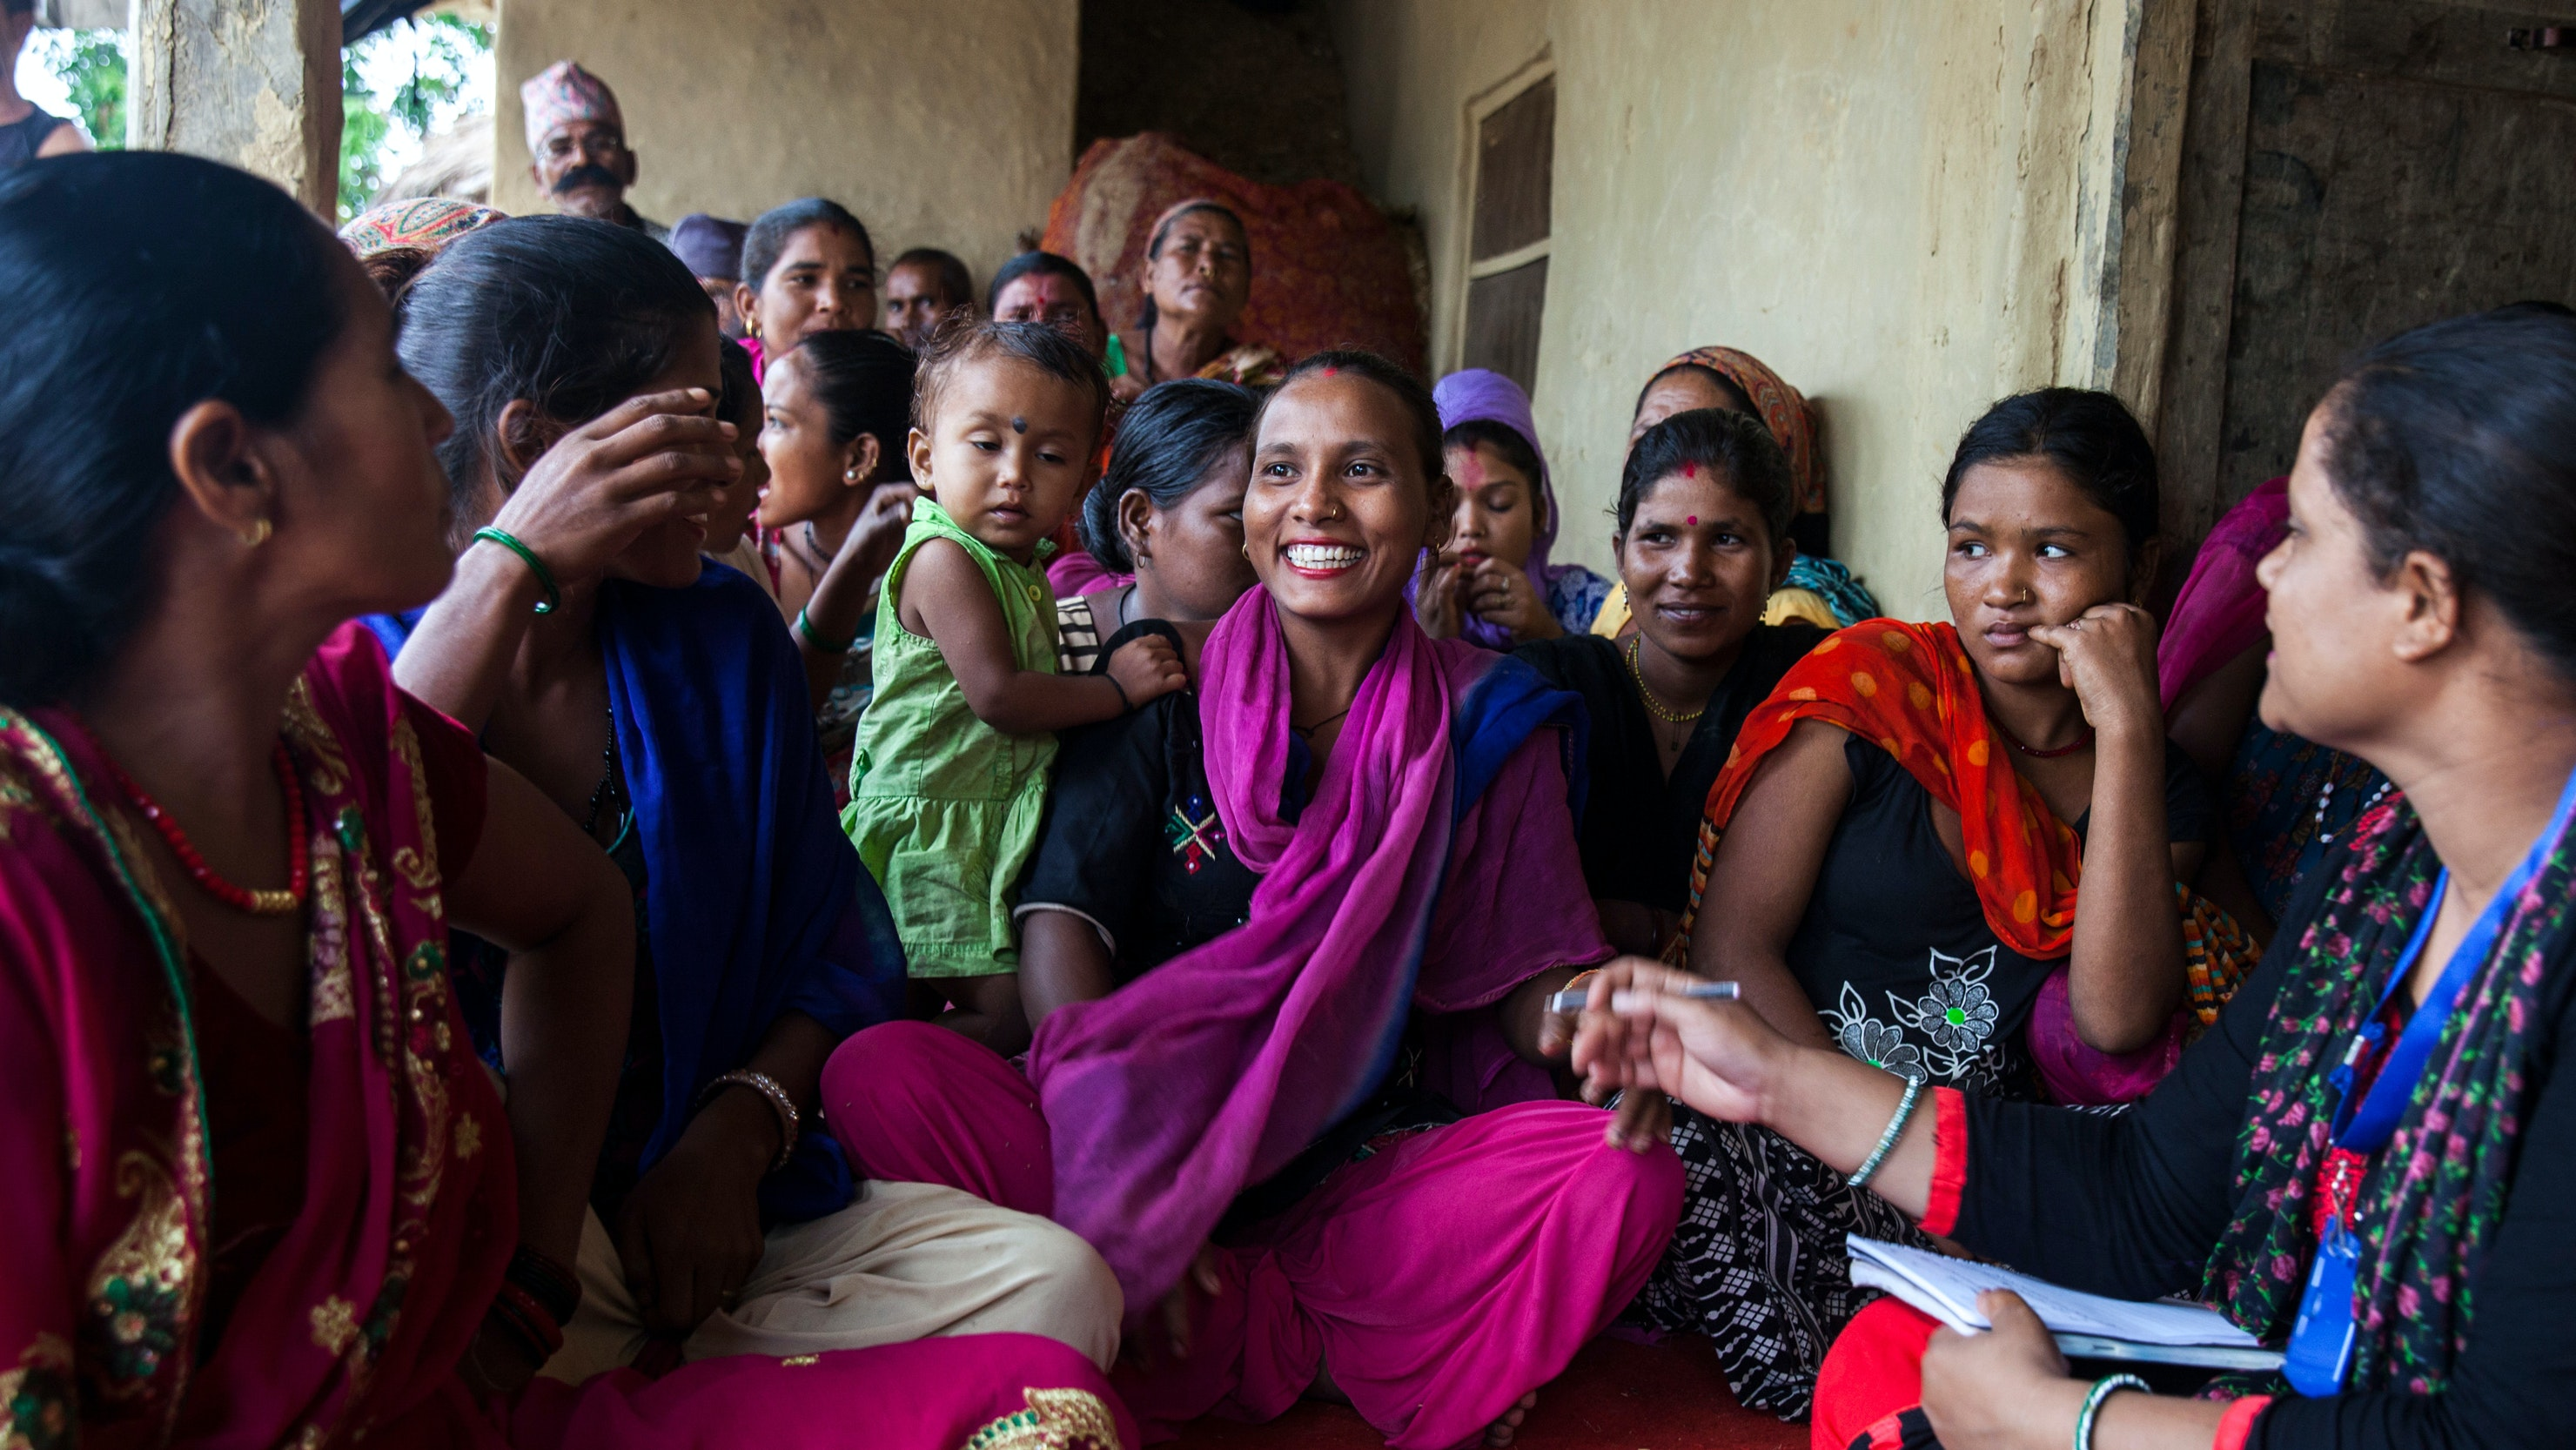 A  woman sitting down and holding a notepad speaks with members of a village in Nepal.